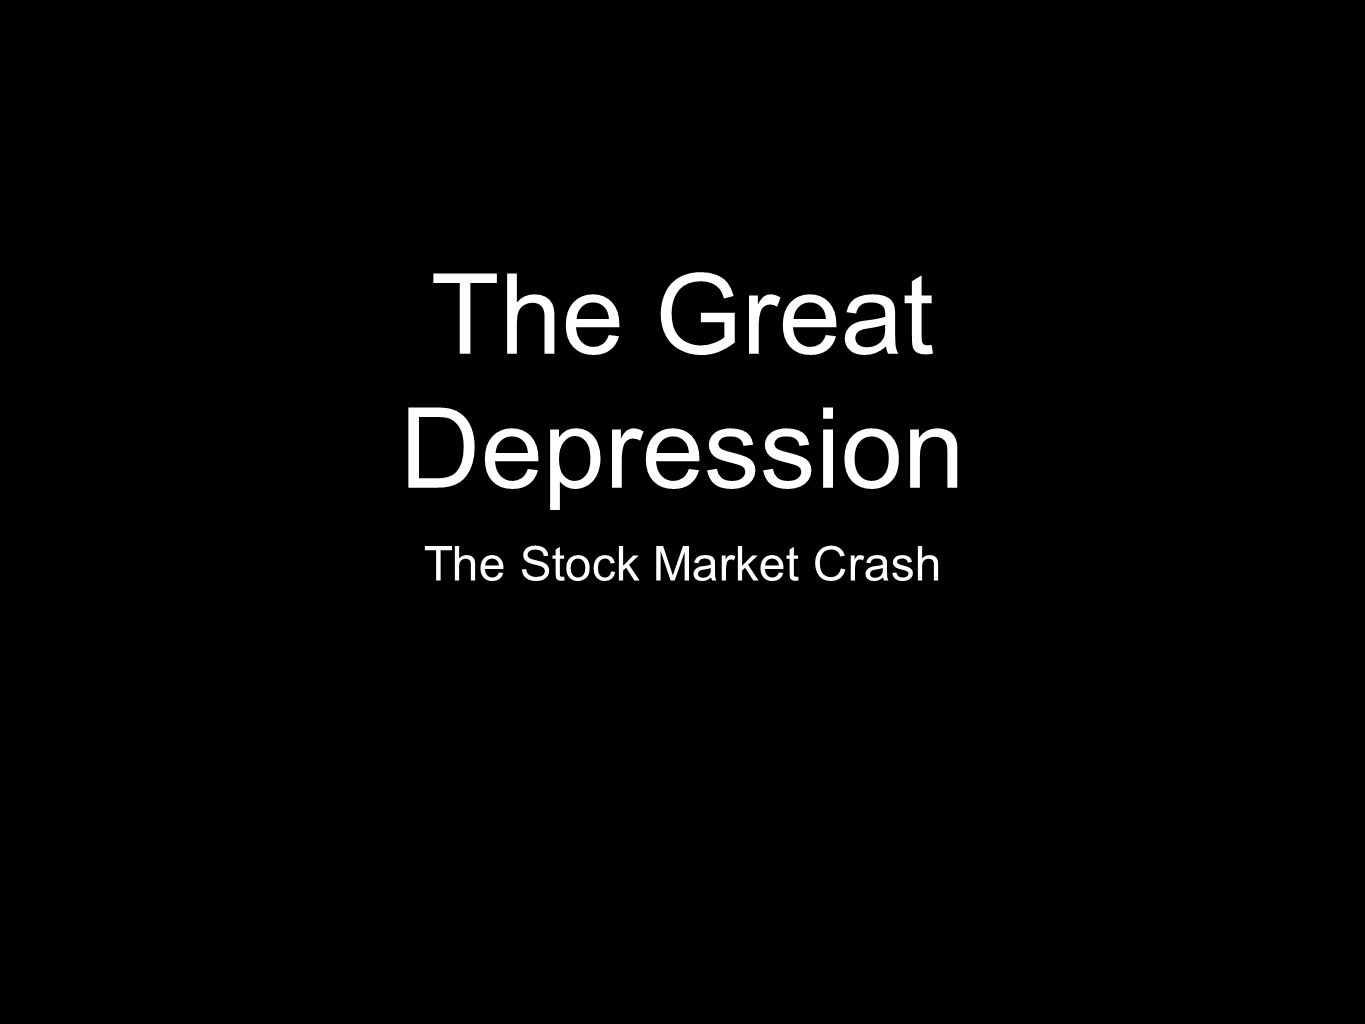 The Great Depression The Stock Market Crash